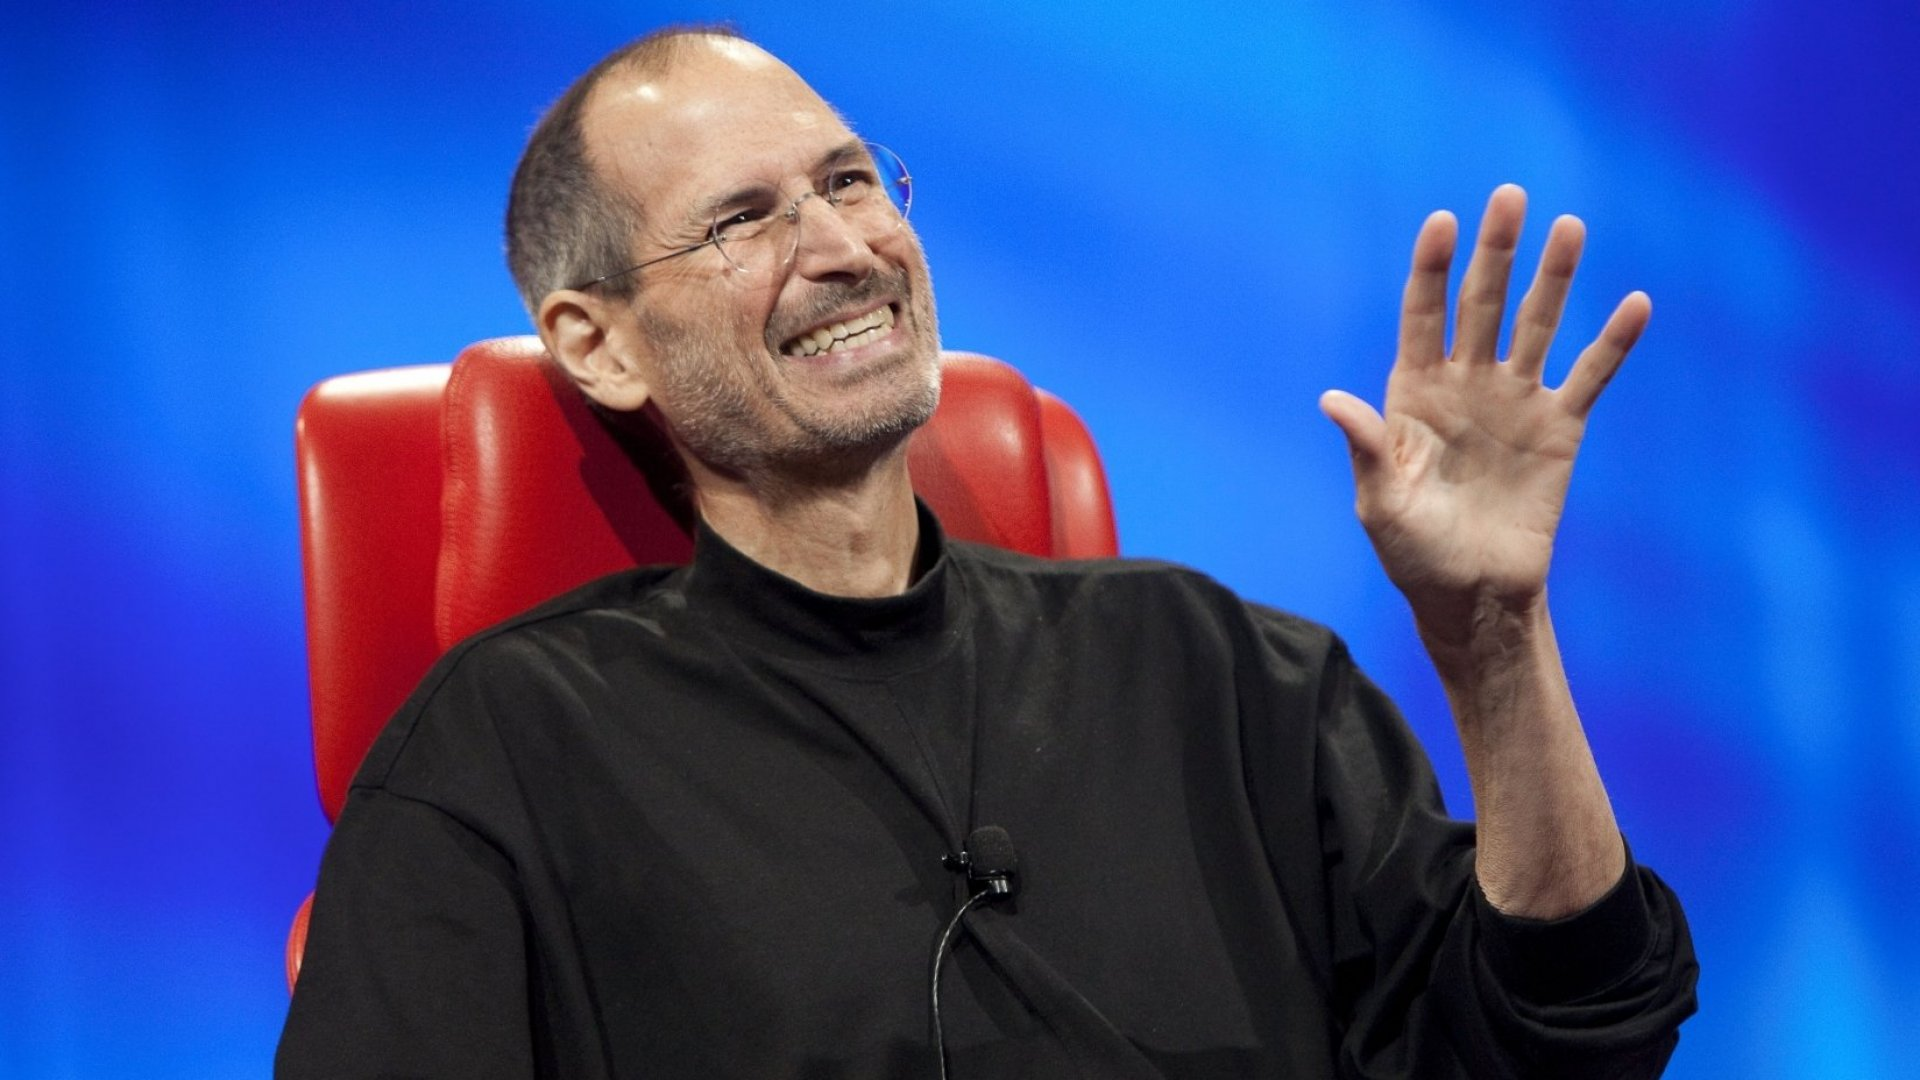 Steve Jobs speaks at All Things Digital in 2010. (Photo by Rick Smolan/Against All Odds Productions/Getty Images)